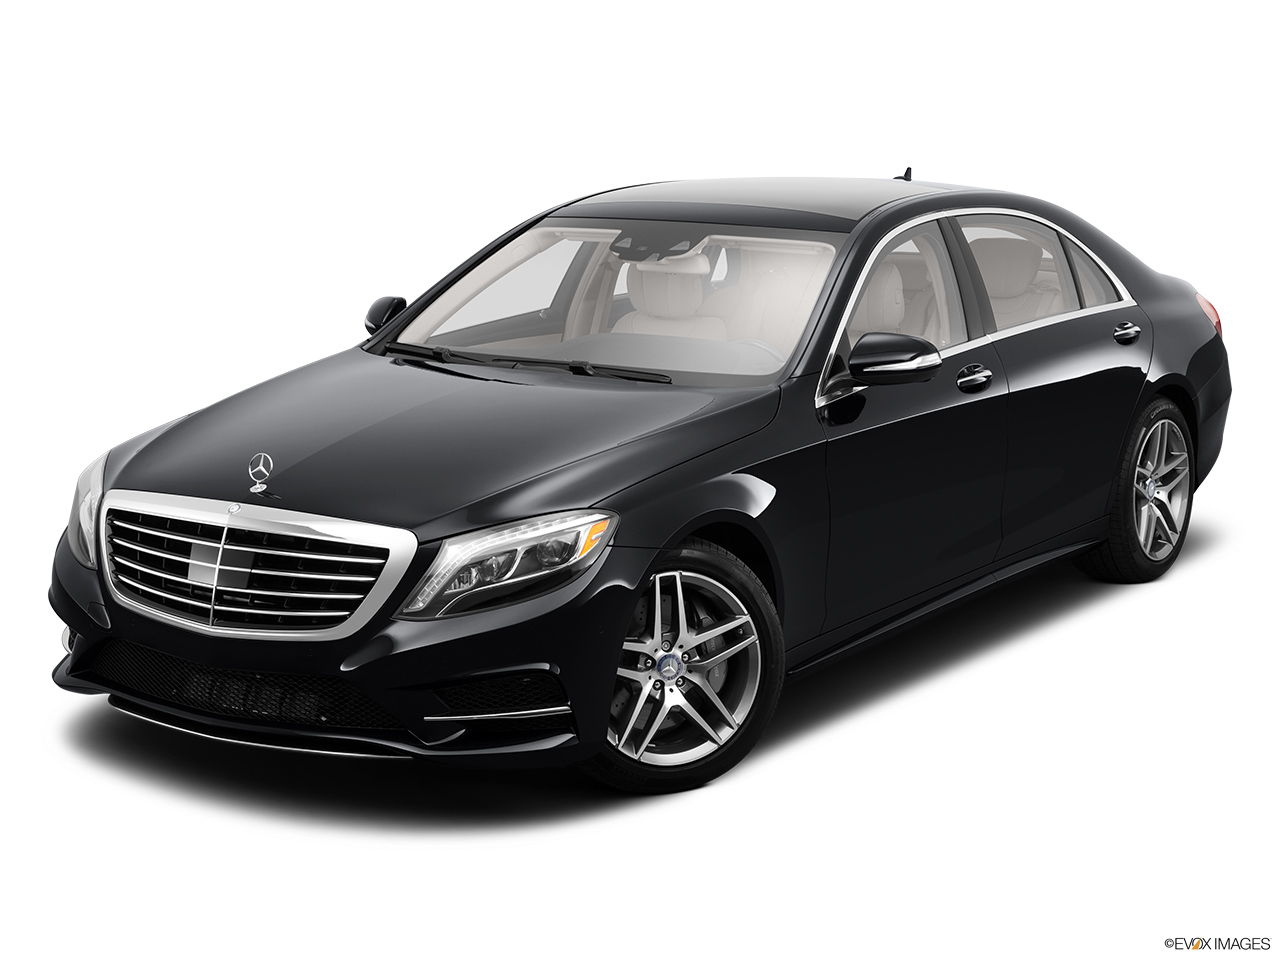 2014 mercedes benz s class sedan s550 4matic. Black Bedroom Furniture Sets. Home Design Ideas